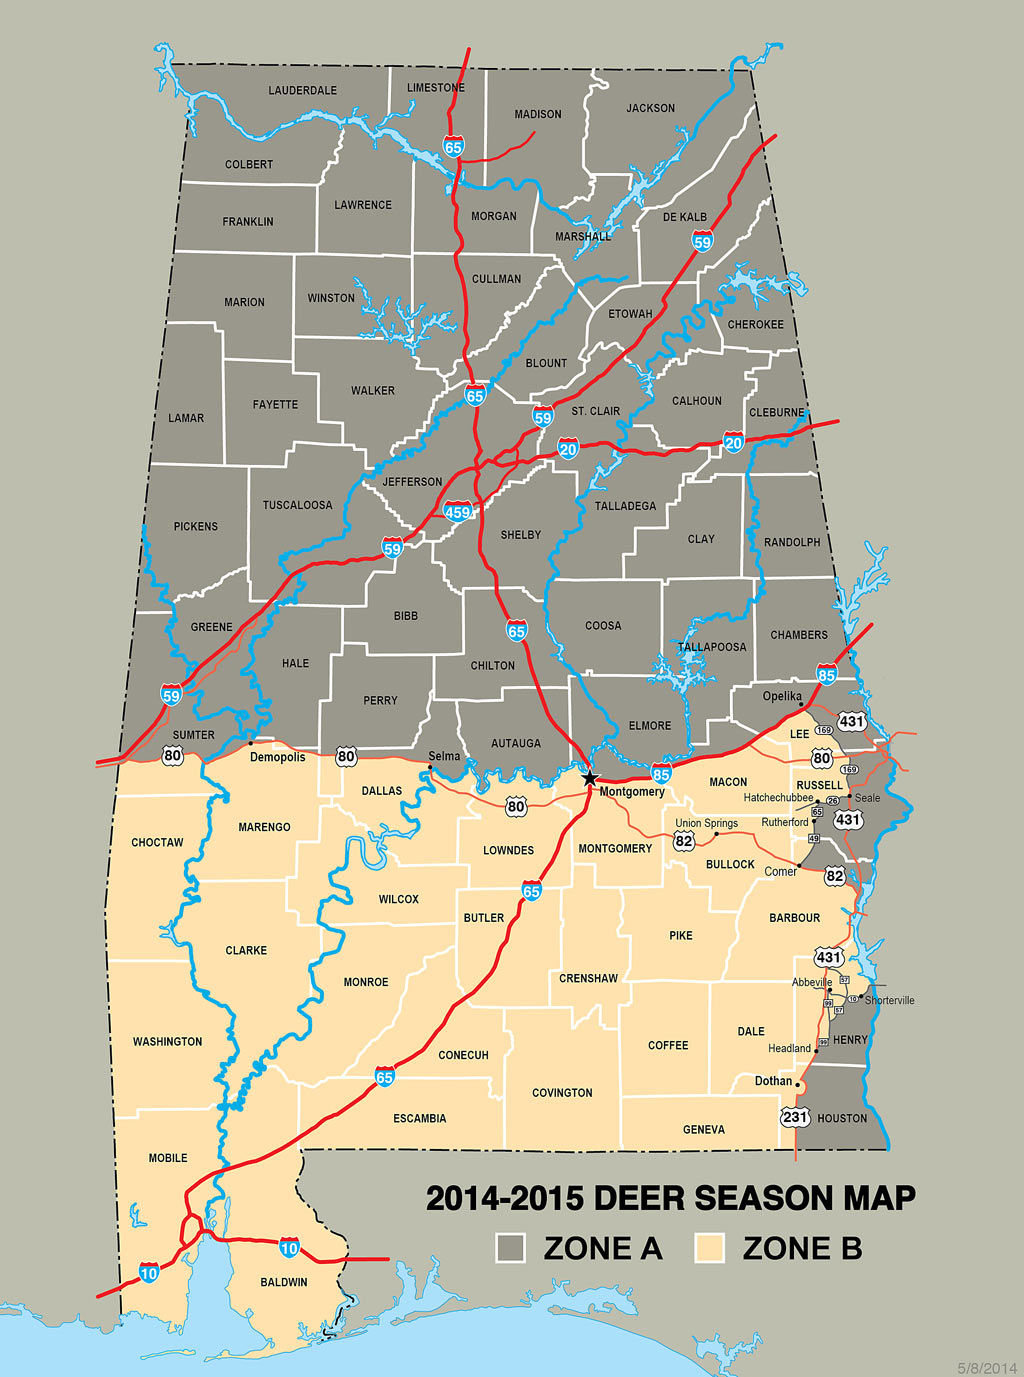 Whitetail Rutting Activity In Alabama Varies Widely | Online with regard to Deer Rut Map